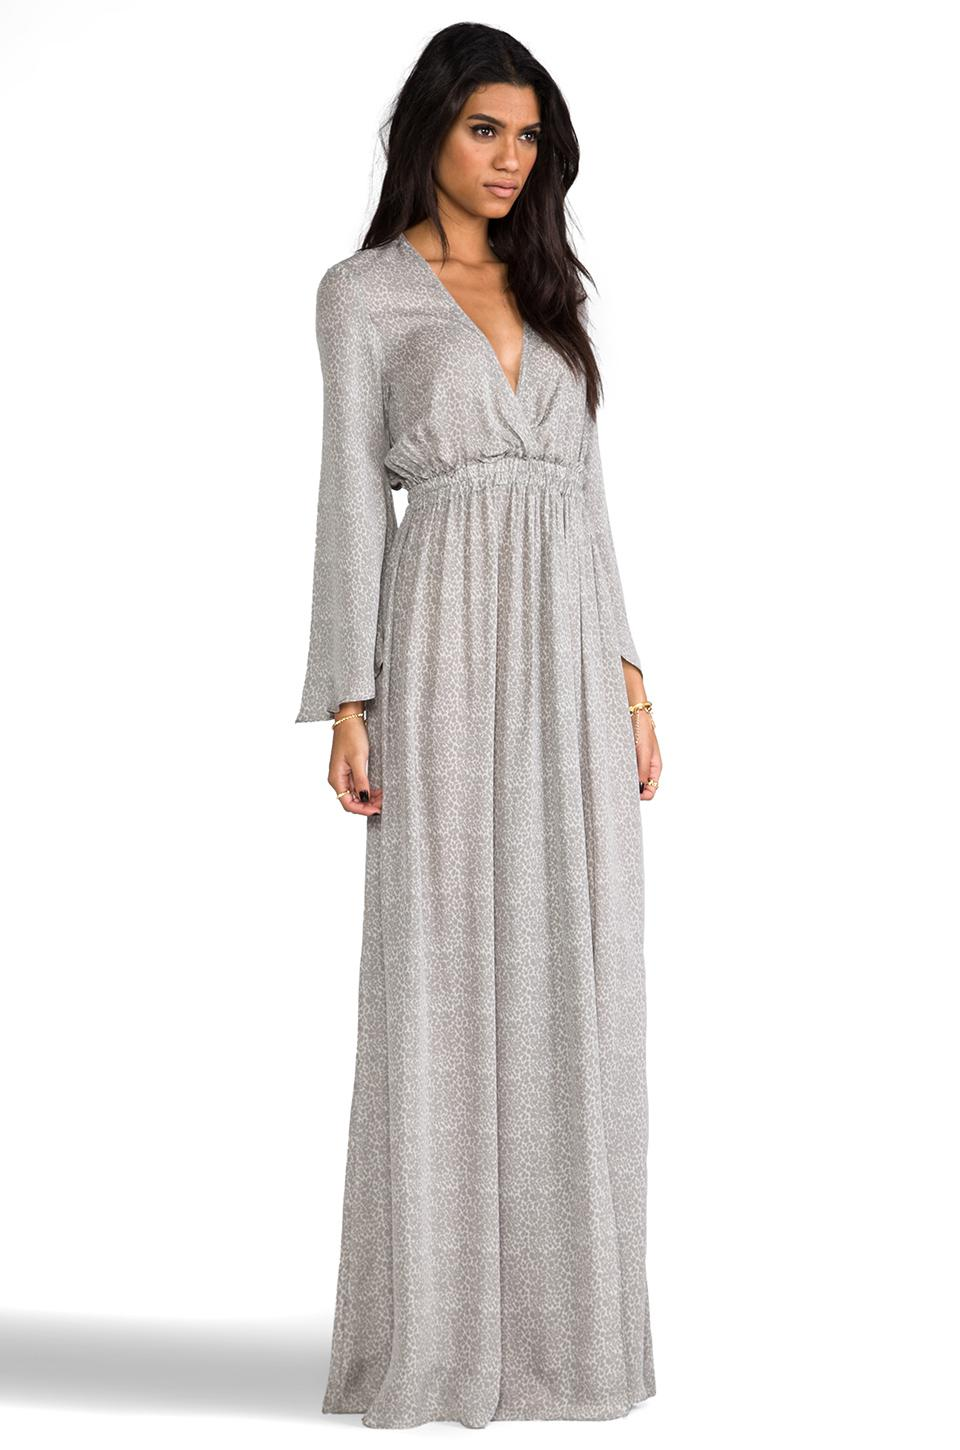 Are you looking for Maxi Dresses casual style online? xflavismo.ga offers the latest high quality long Maxi Dresses for women at great prices. Free shipping world wide.